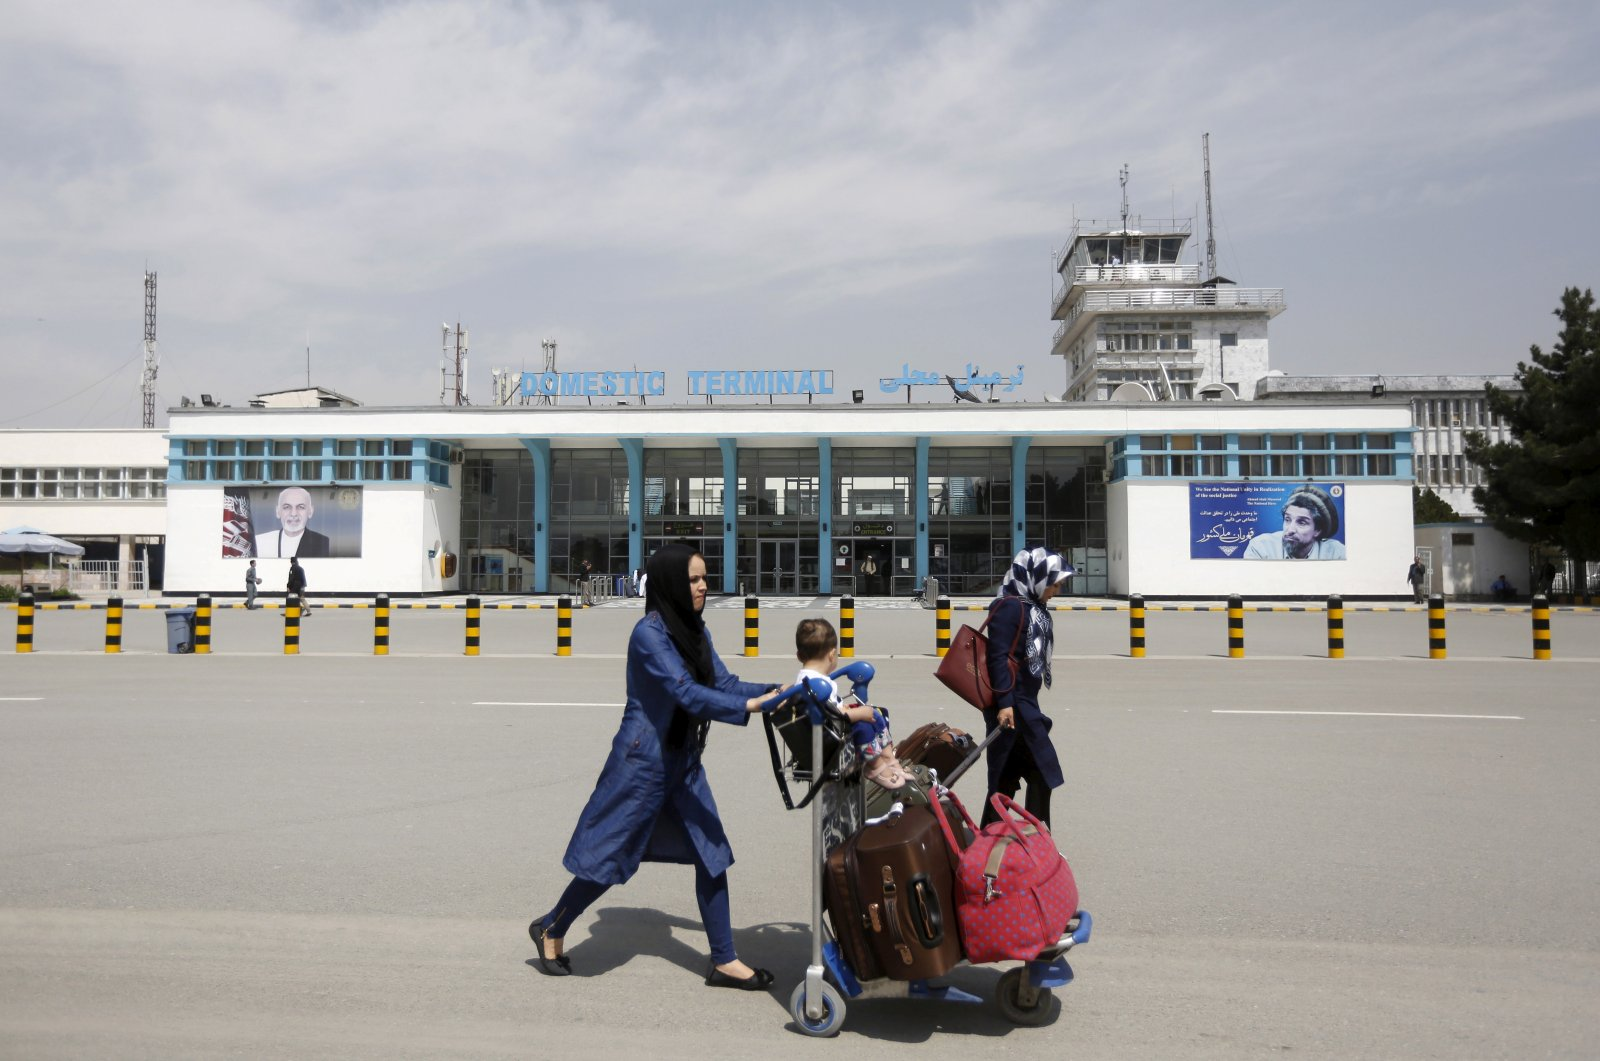 Afghan passengers walk in front of Hamid Karzai International Airport in Kabul, Afghanistan, March 29, 2016. (REUTERS Photo)